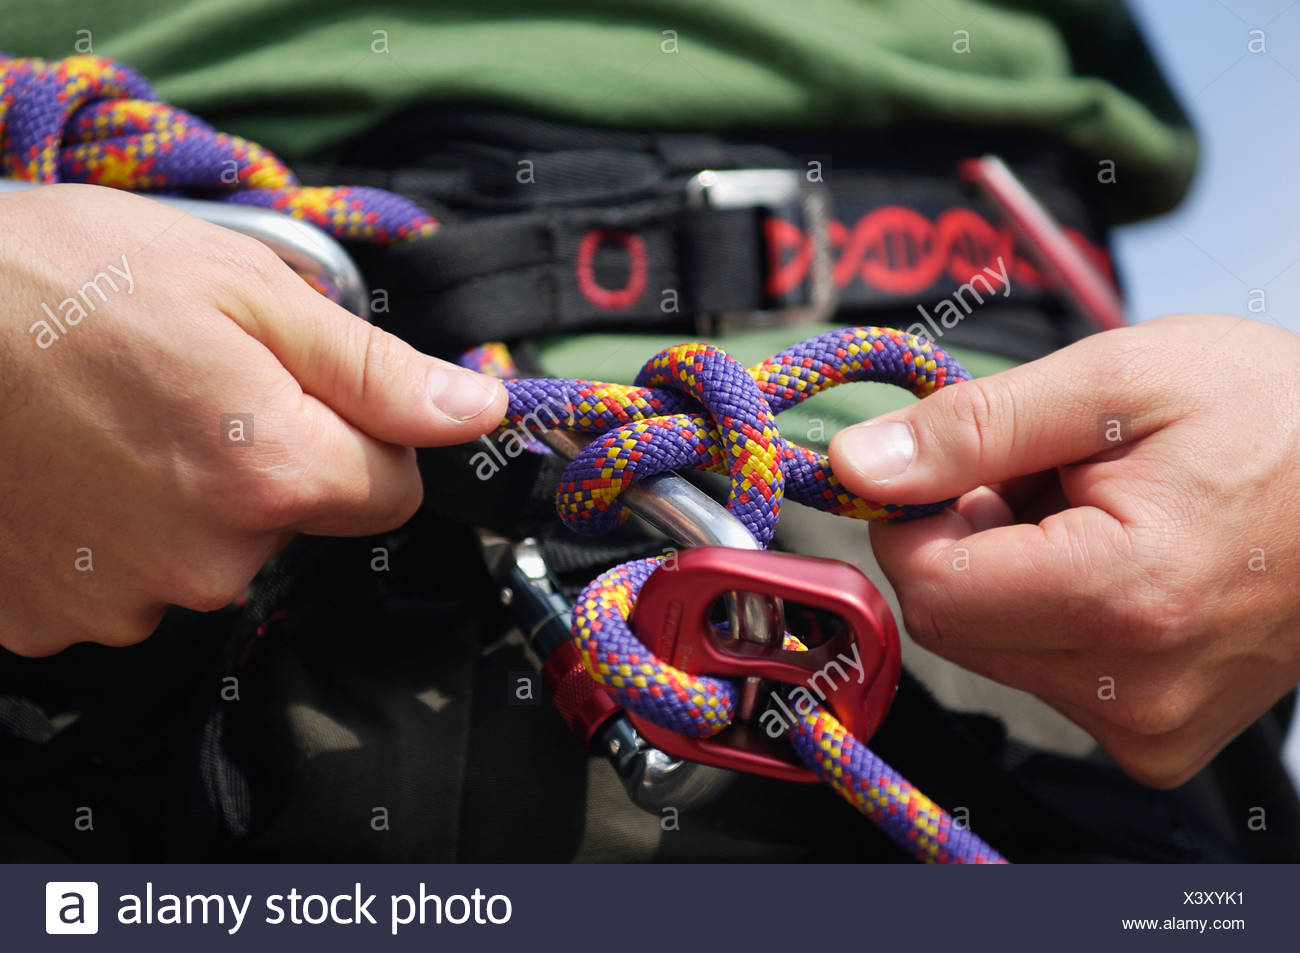 Man undoing hitch from gripping climbing rope, close-up - Stock Image